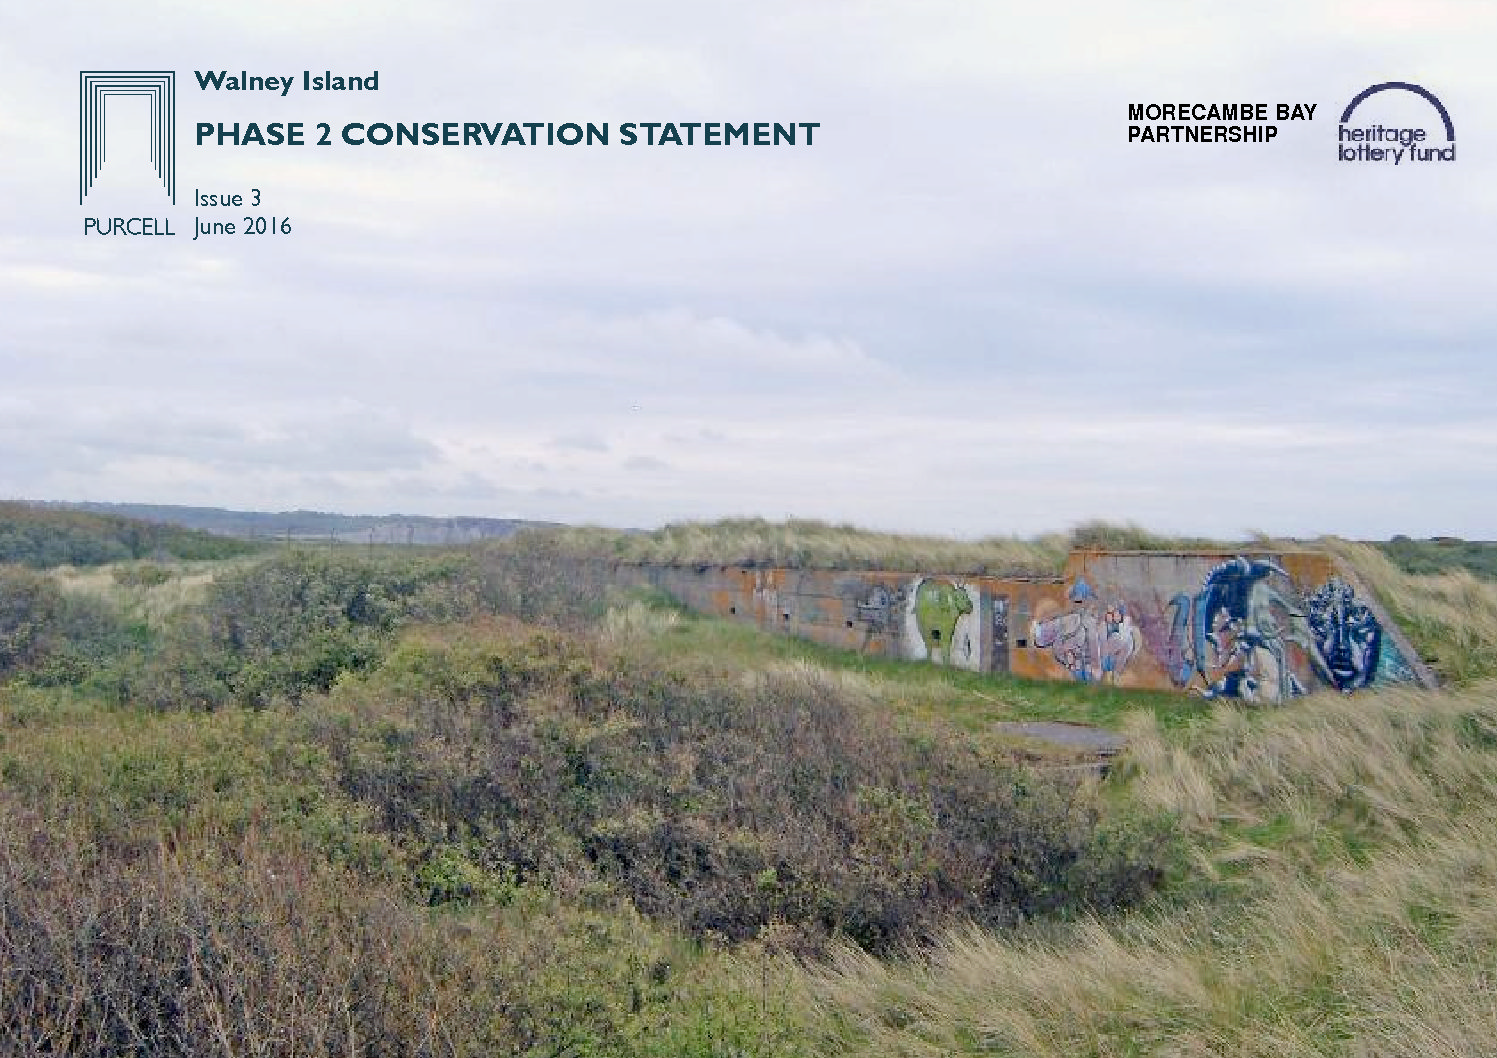 Walney Island Phase 2 Conservation Statement